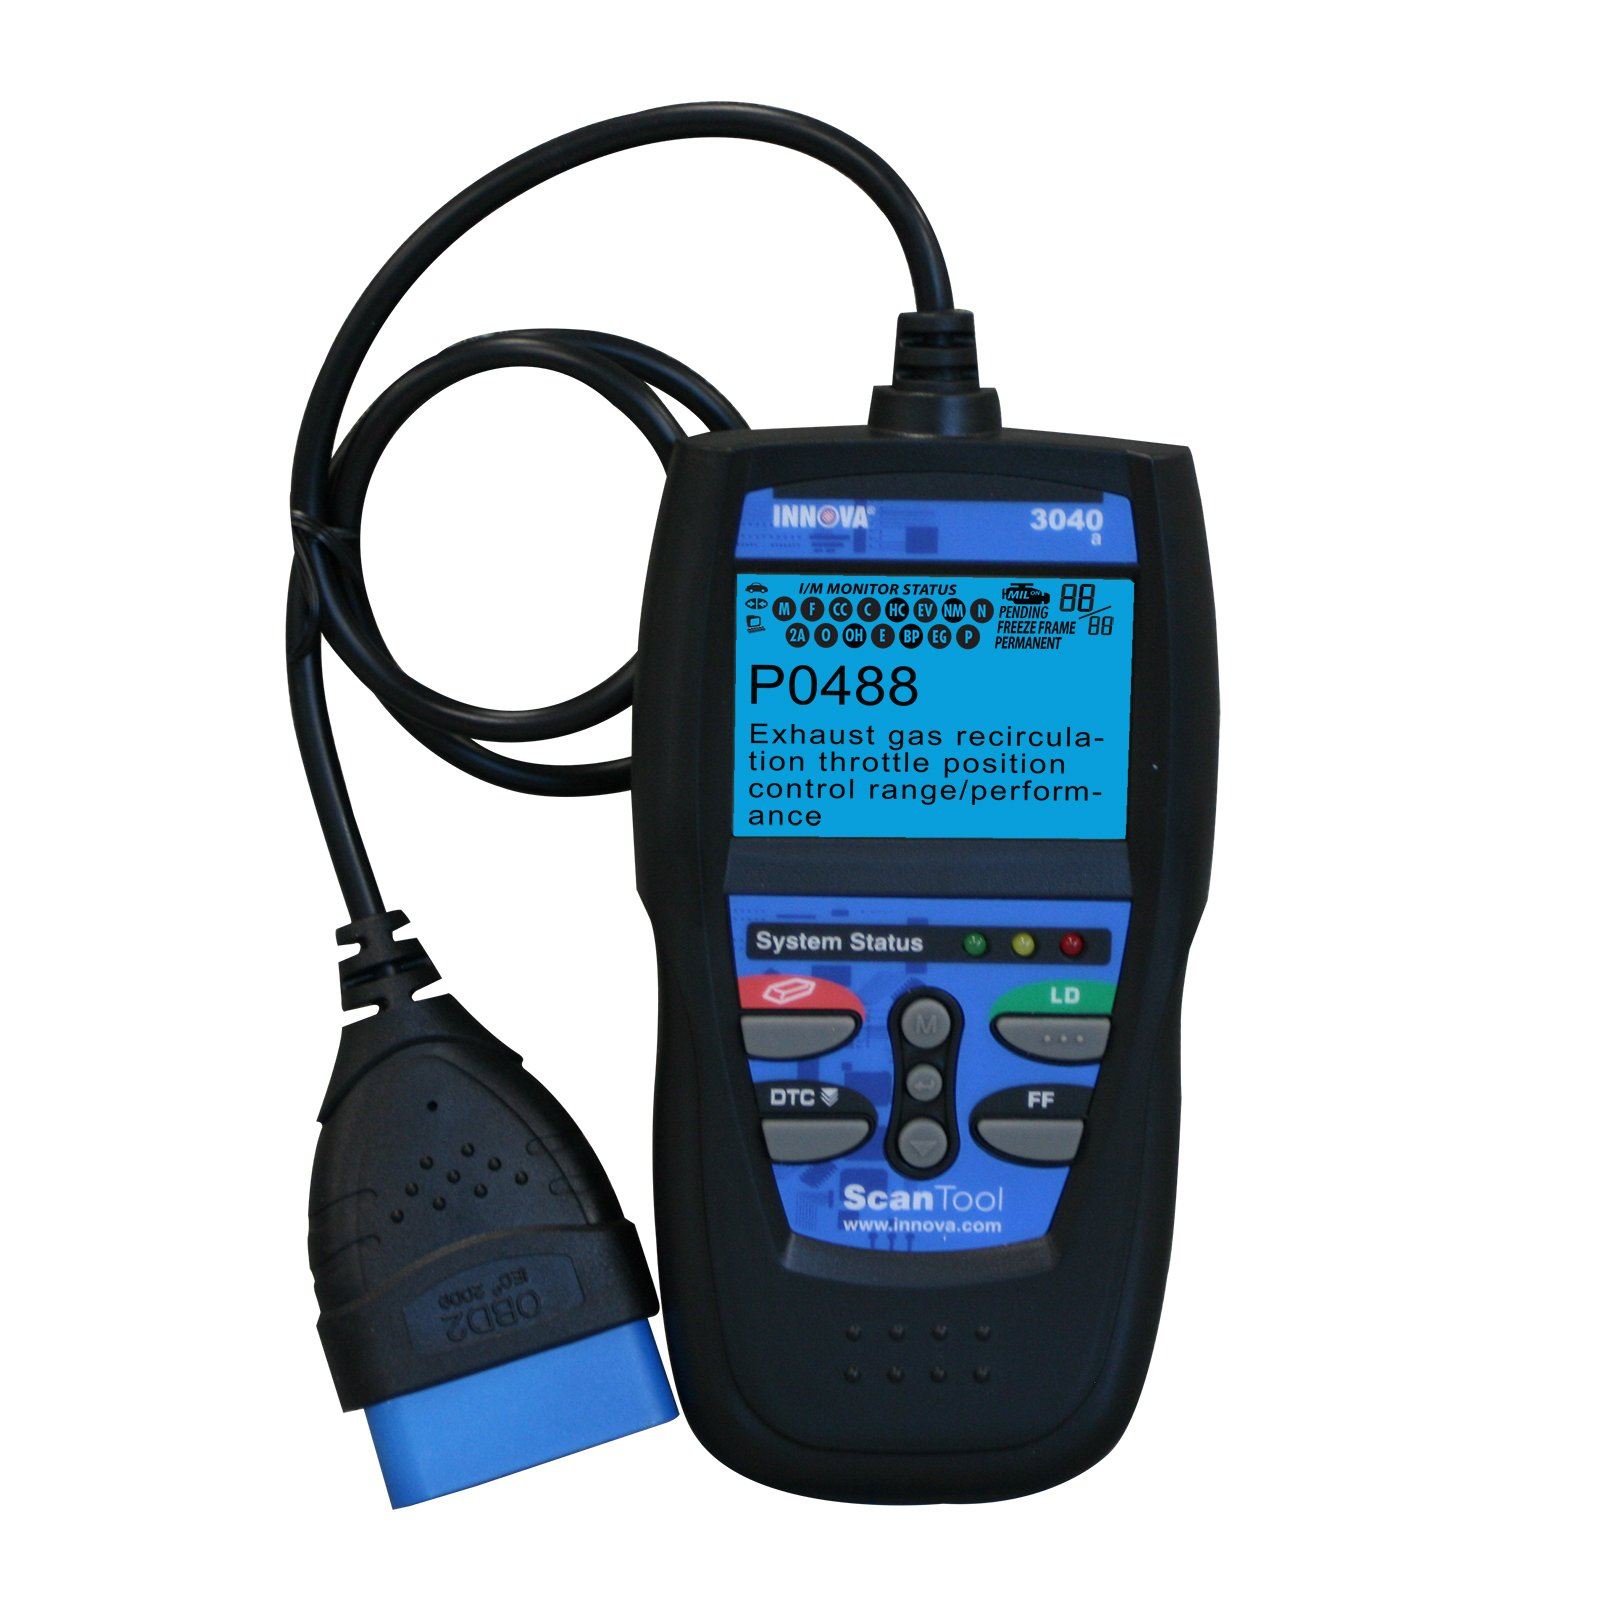 INNOVA 3040 Diagnostic Scan Tool/Code Reader with Live Data for OBD2 Vehicles